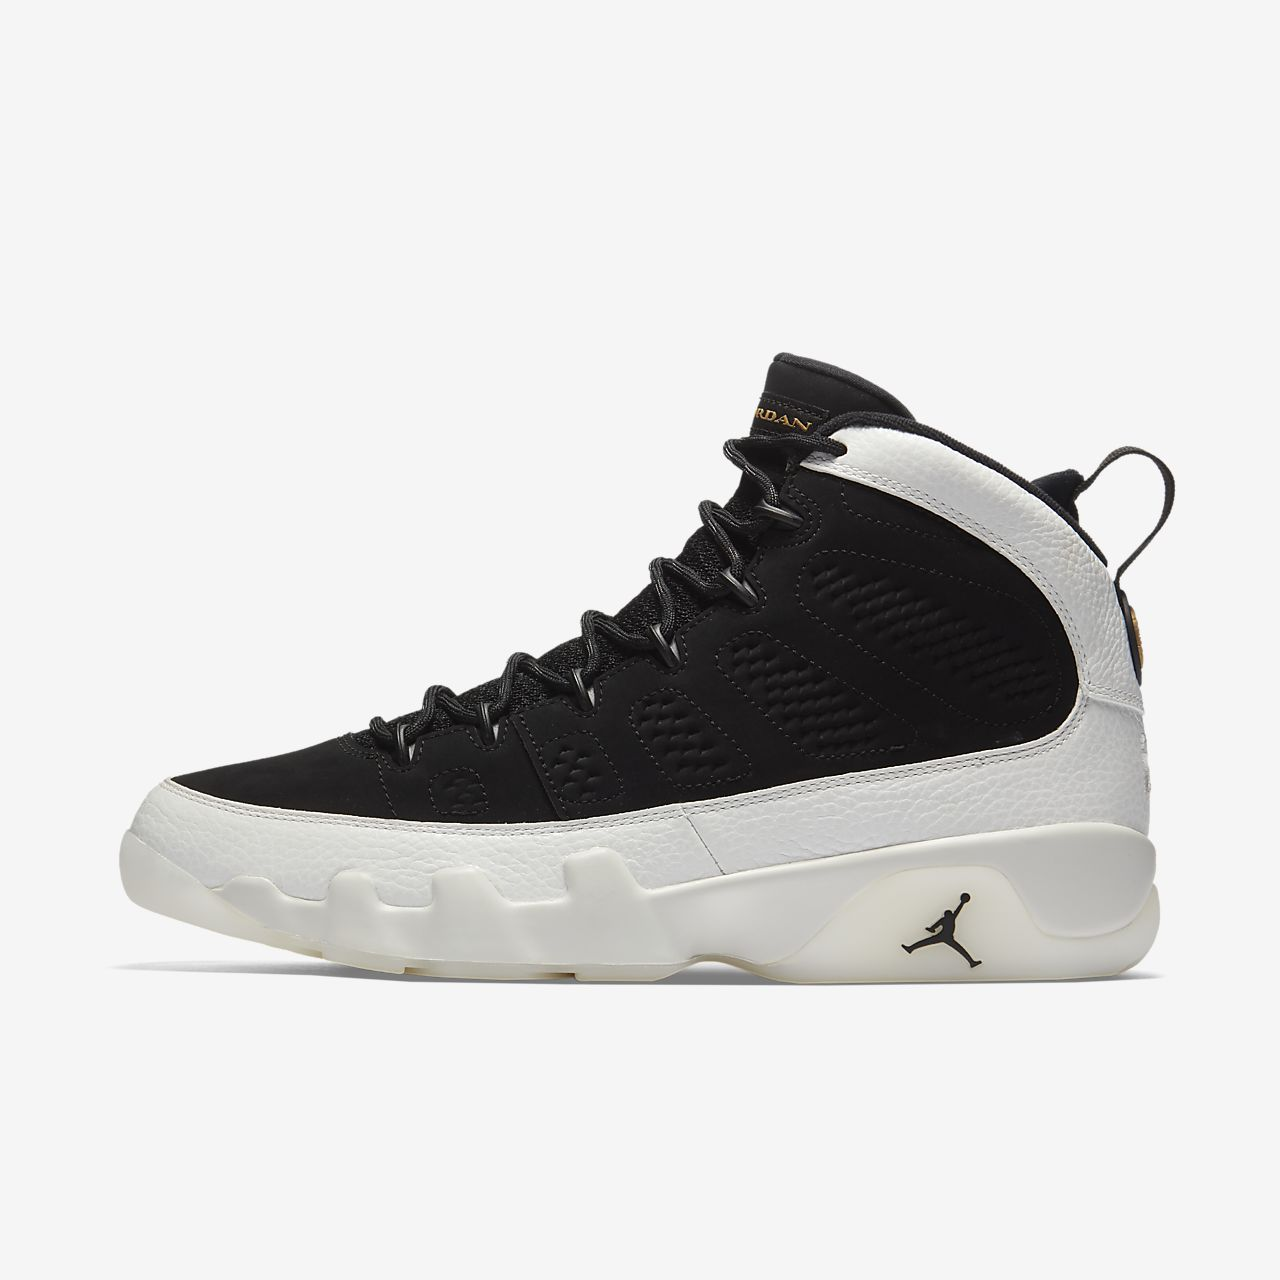 superior quality f1ffa 957b8 Air Jordan 9 Retro Men's Shoe